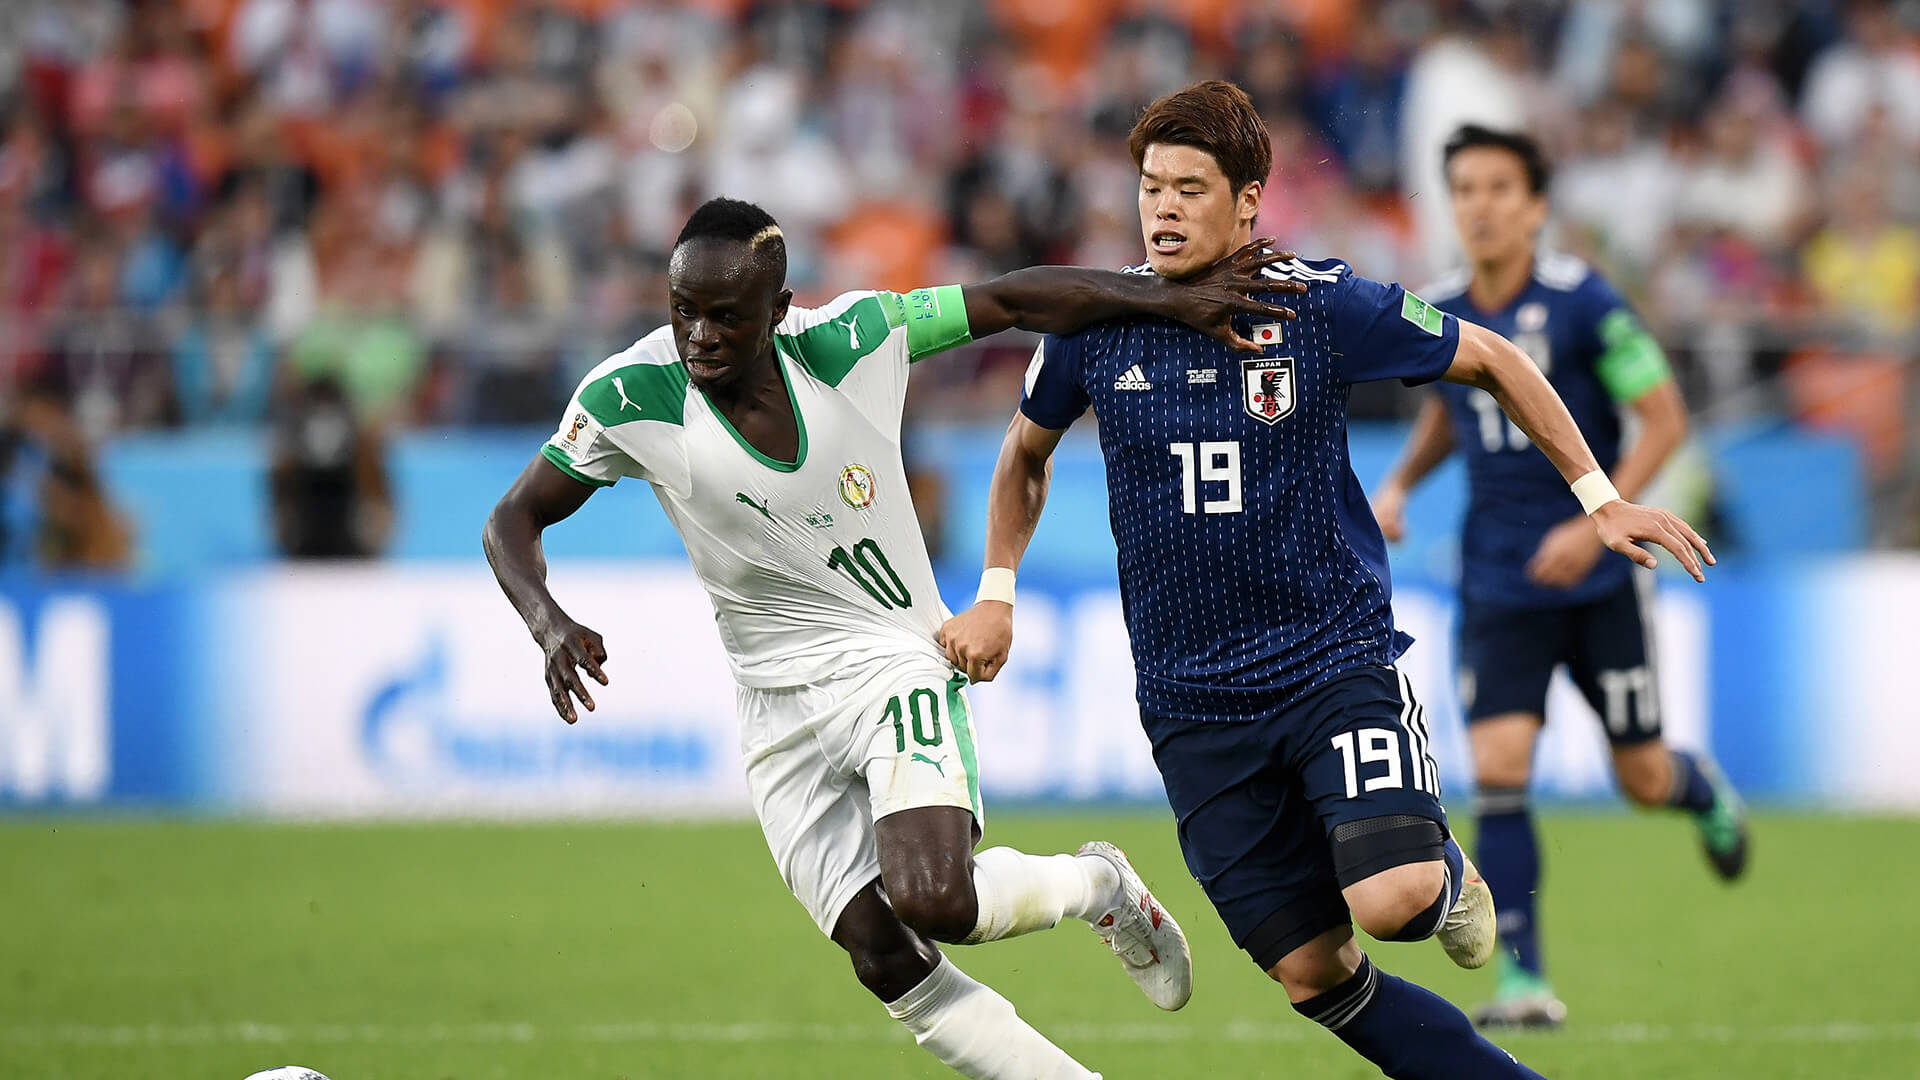 Senegal lose concentration late on and Japan snatch a draw after scoring a late goal in this 2-2 Group H duel.